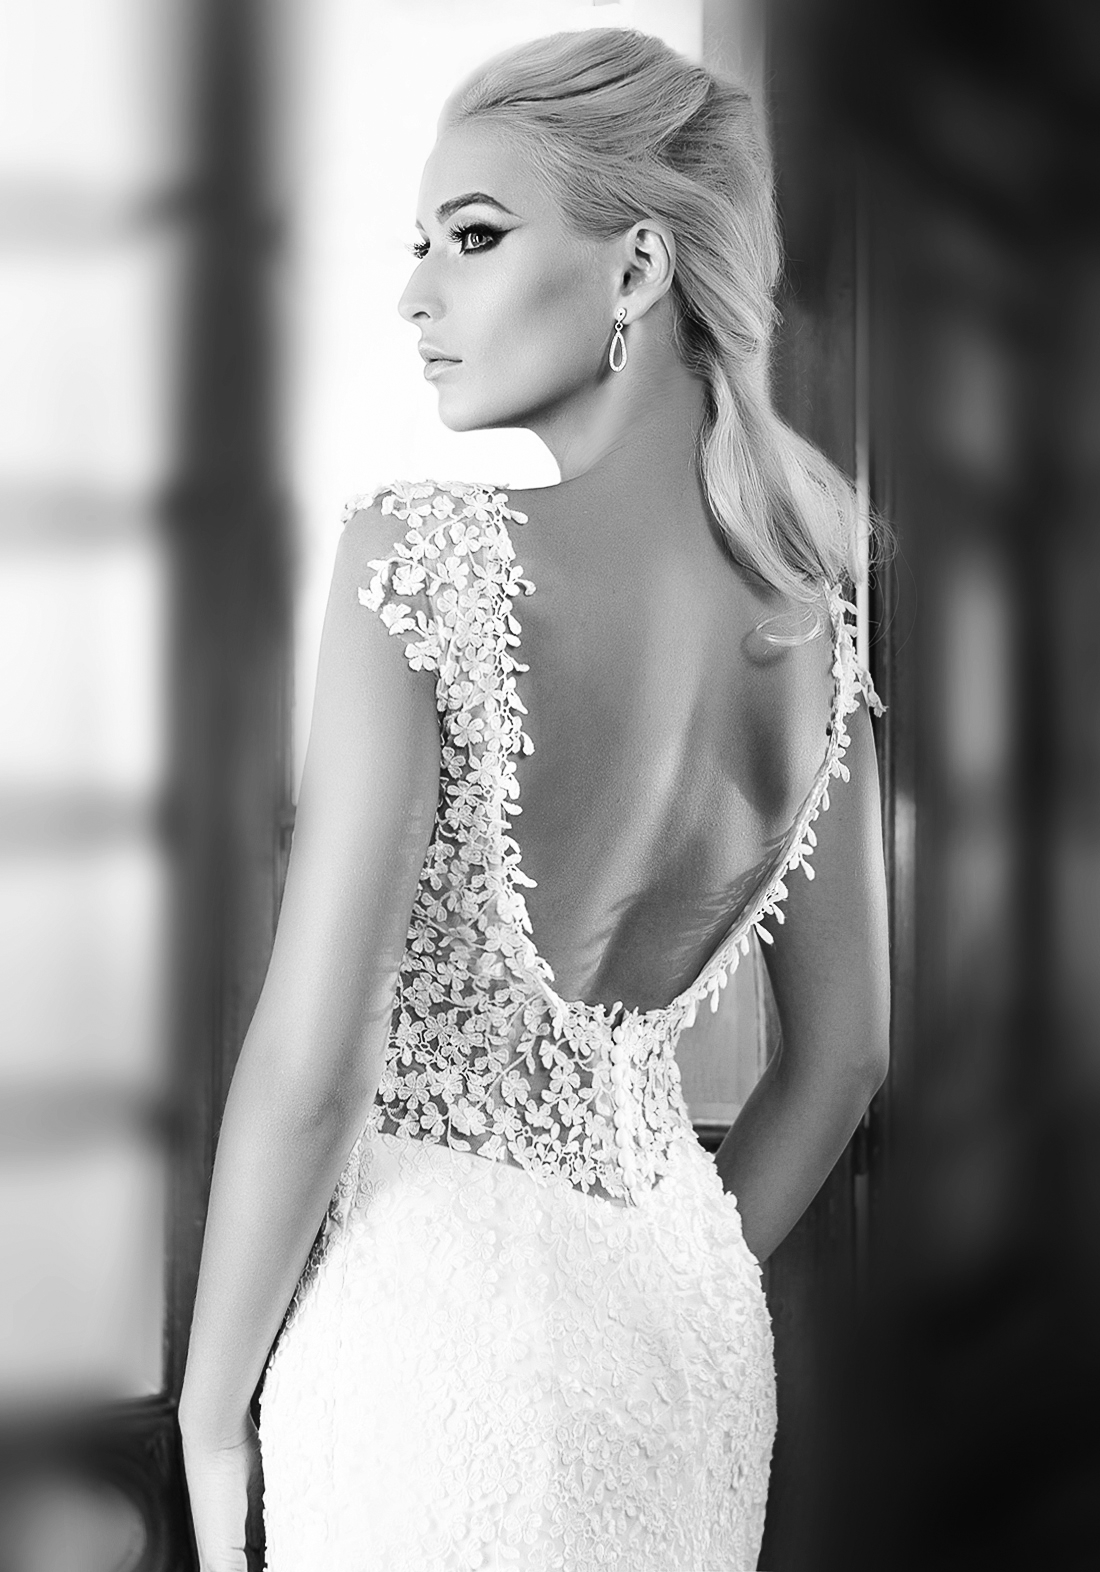 bien-savvy-wedding-dresses-2014-collection-2-01232014